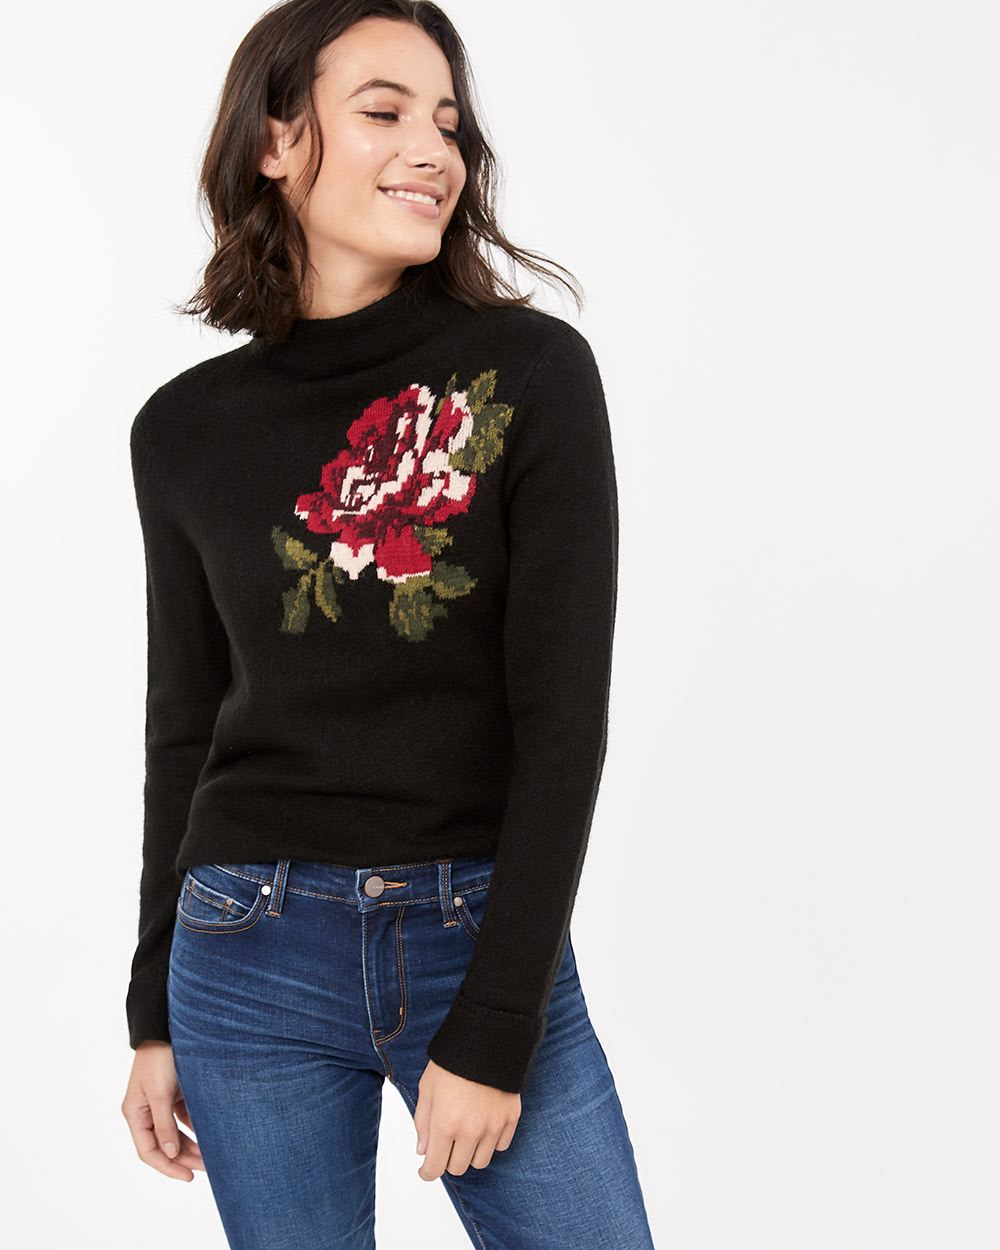 Long Sleeve Sweater with Floral Print